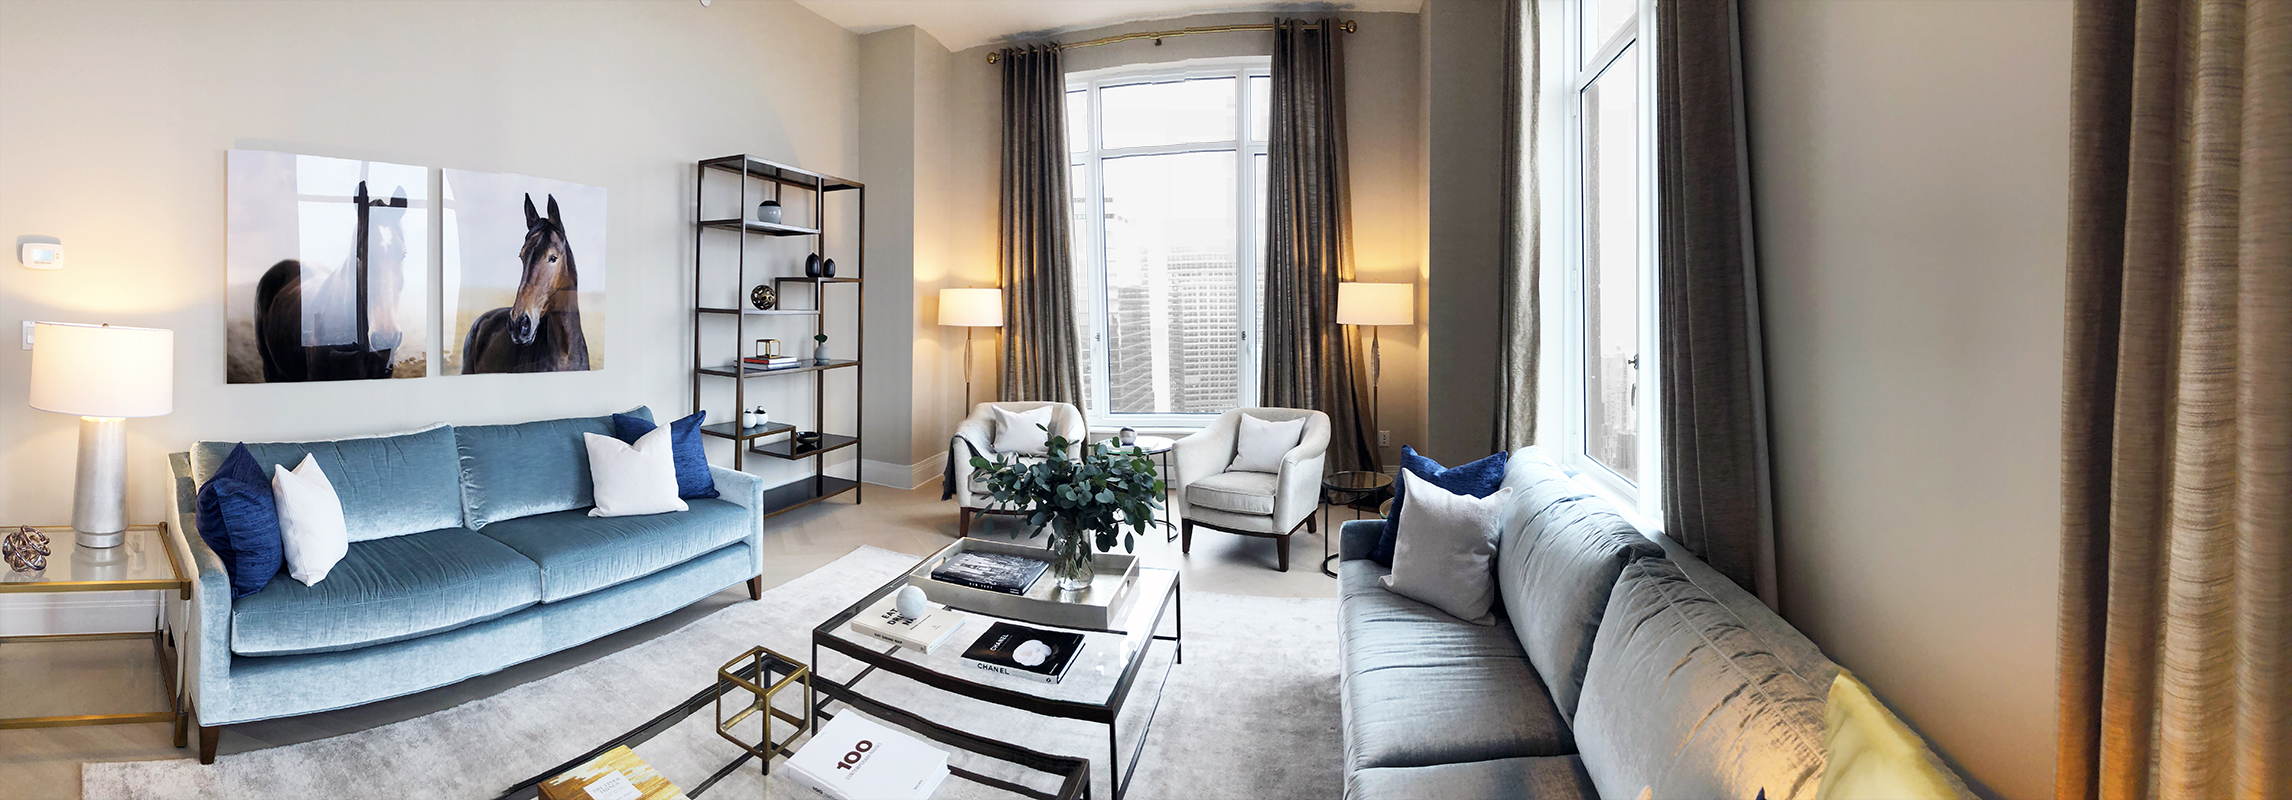 30 Park Place Living Room